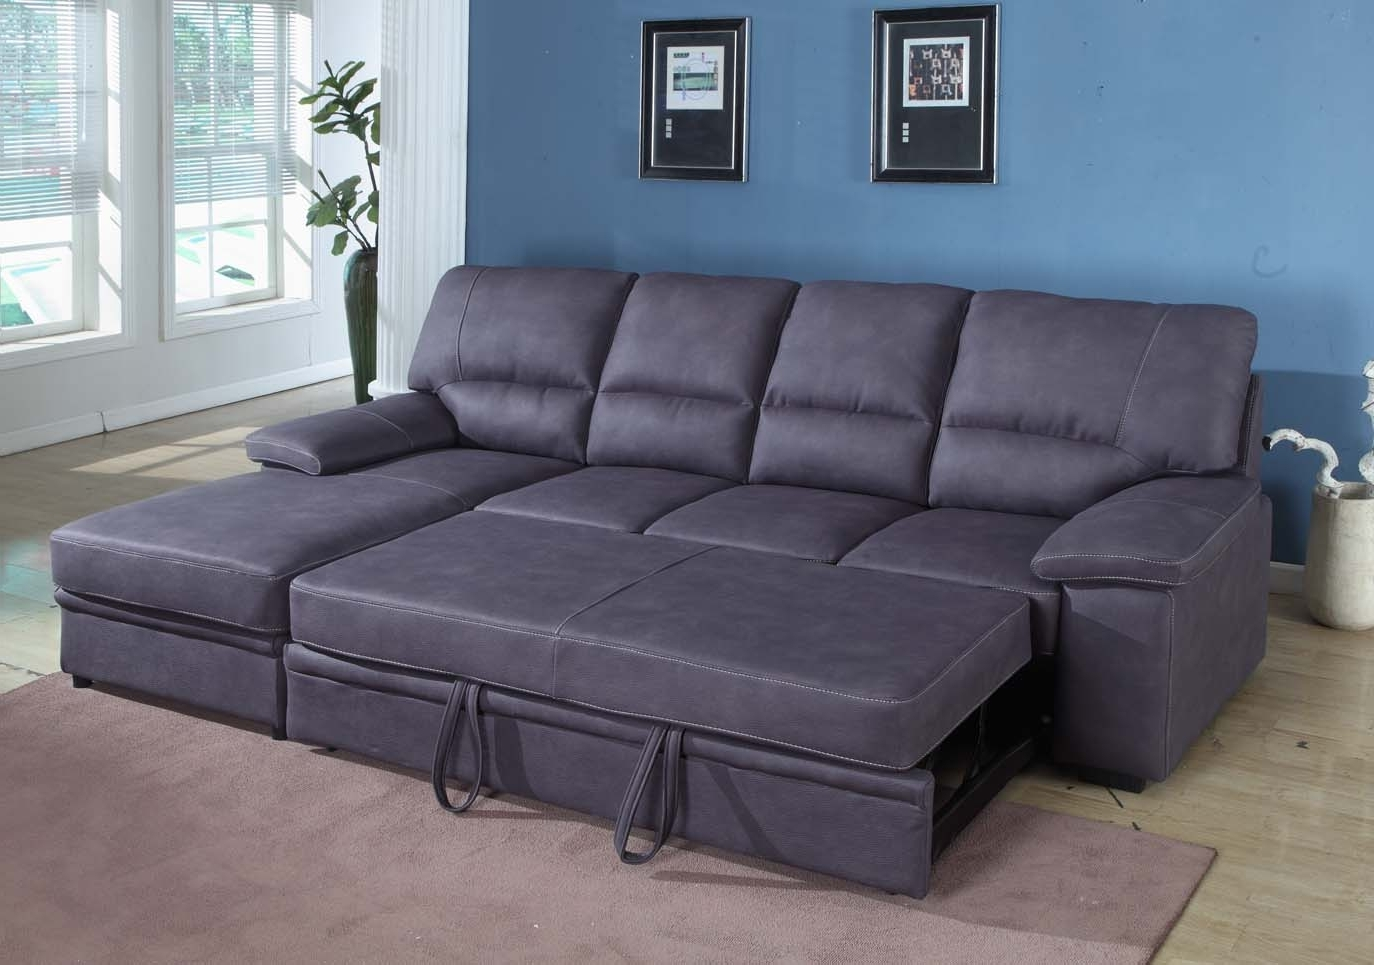 Most Recent Furniture : Sectional Sofa Nj Best Sectional Sofa Under 500 Throughout Vt Sectional Sofas (View 6 of 21)